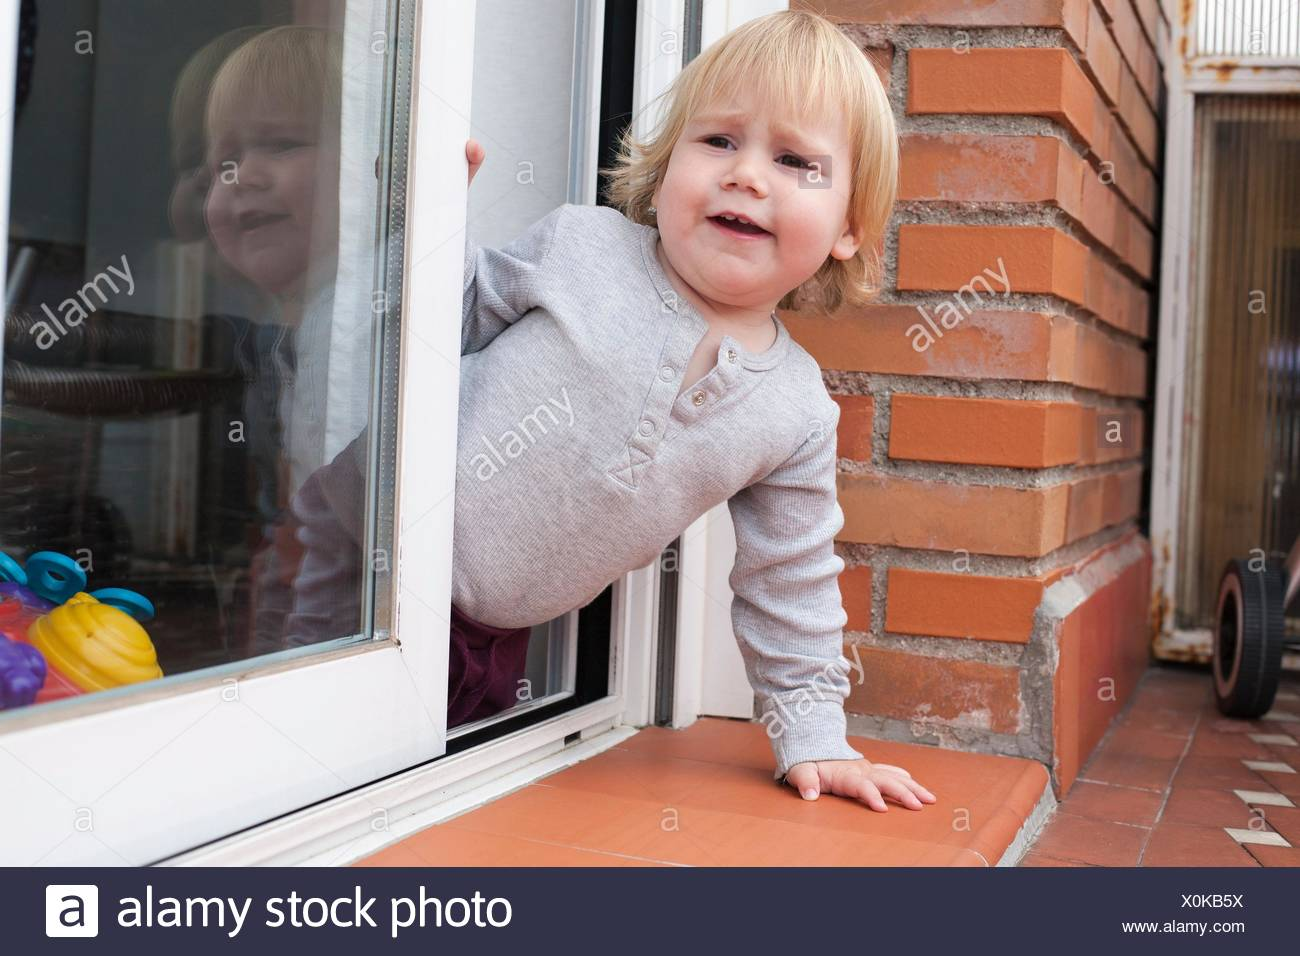 portrait of blonde caucasian baby nineteen month age chubby face calling peering terrace floor supported on the arms. - Stock Image